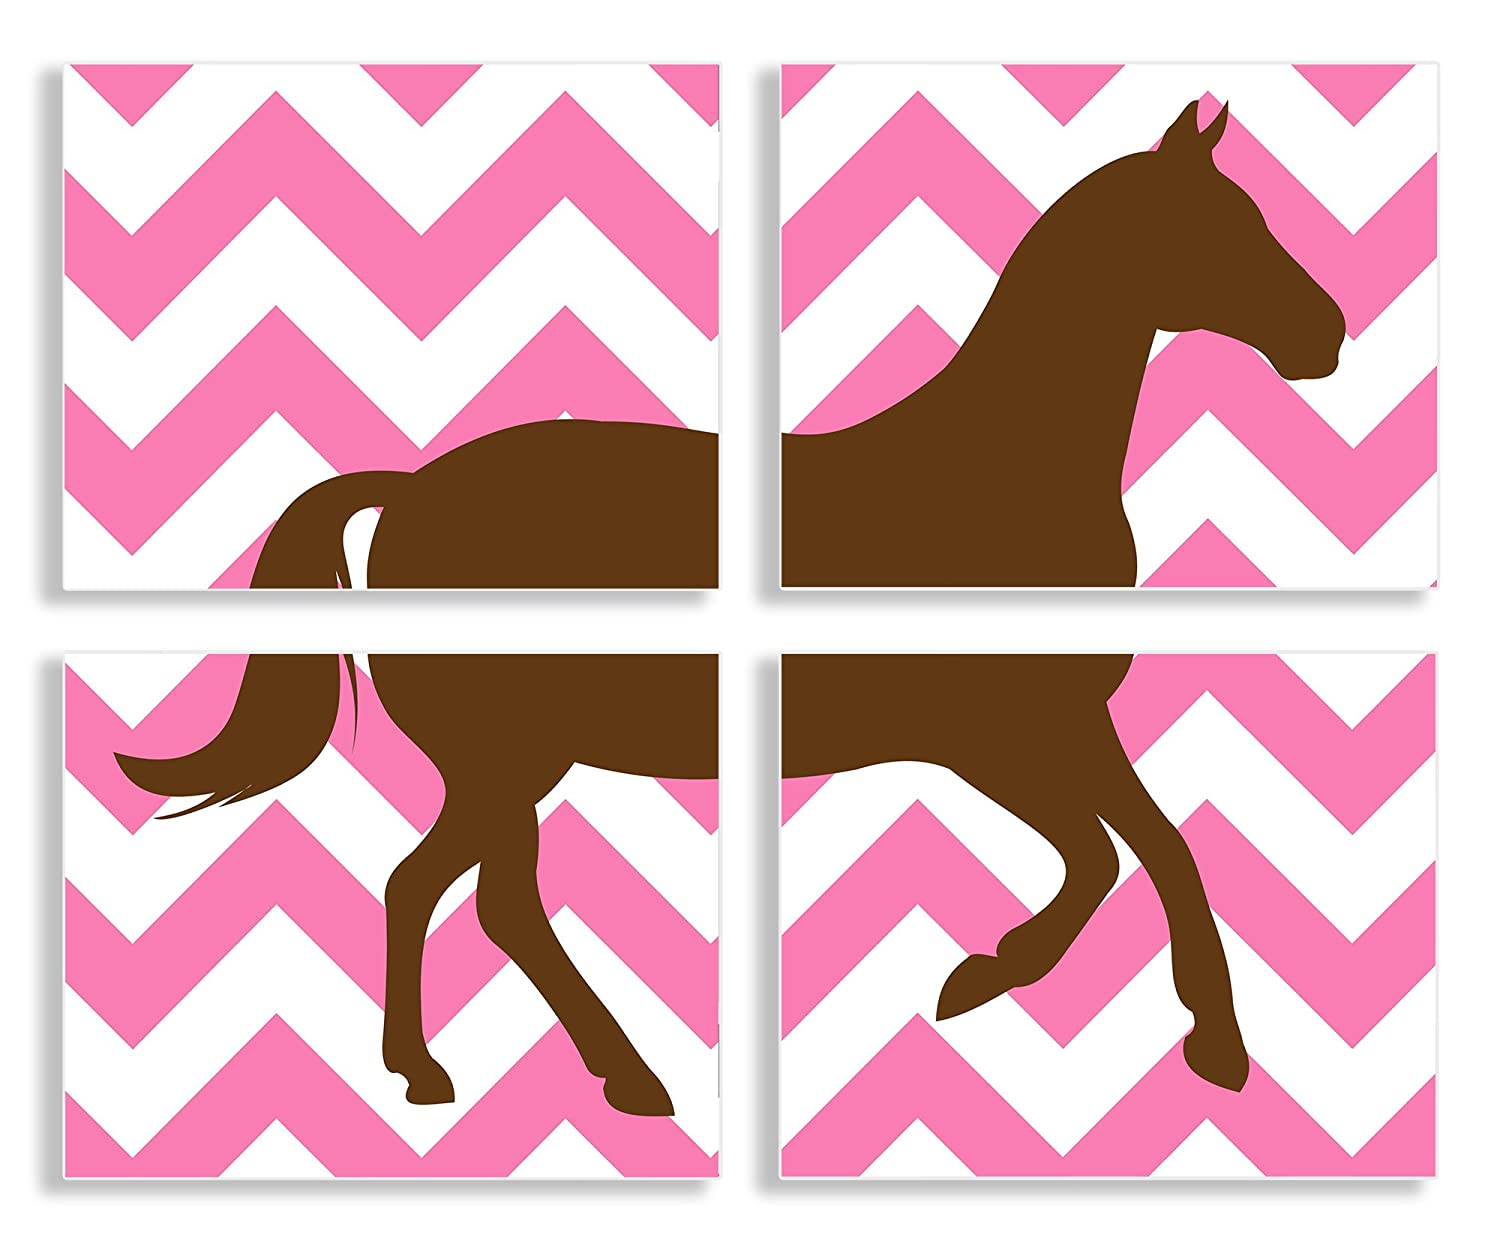 Proudly Made in USA The Kids Room by Stupell The Kids Room By Stupell Brown Horse Silhouette On Pink Chevron 4-Pc Rectangle Wall Plaque Set brp-1640 quad KIDTJ